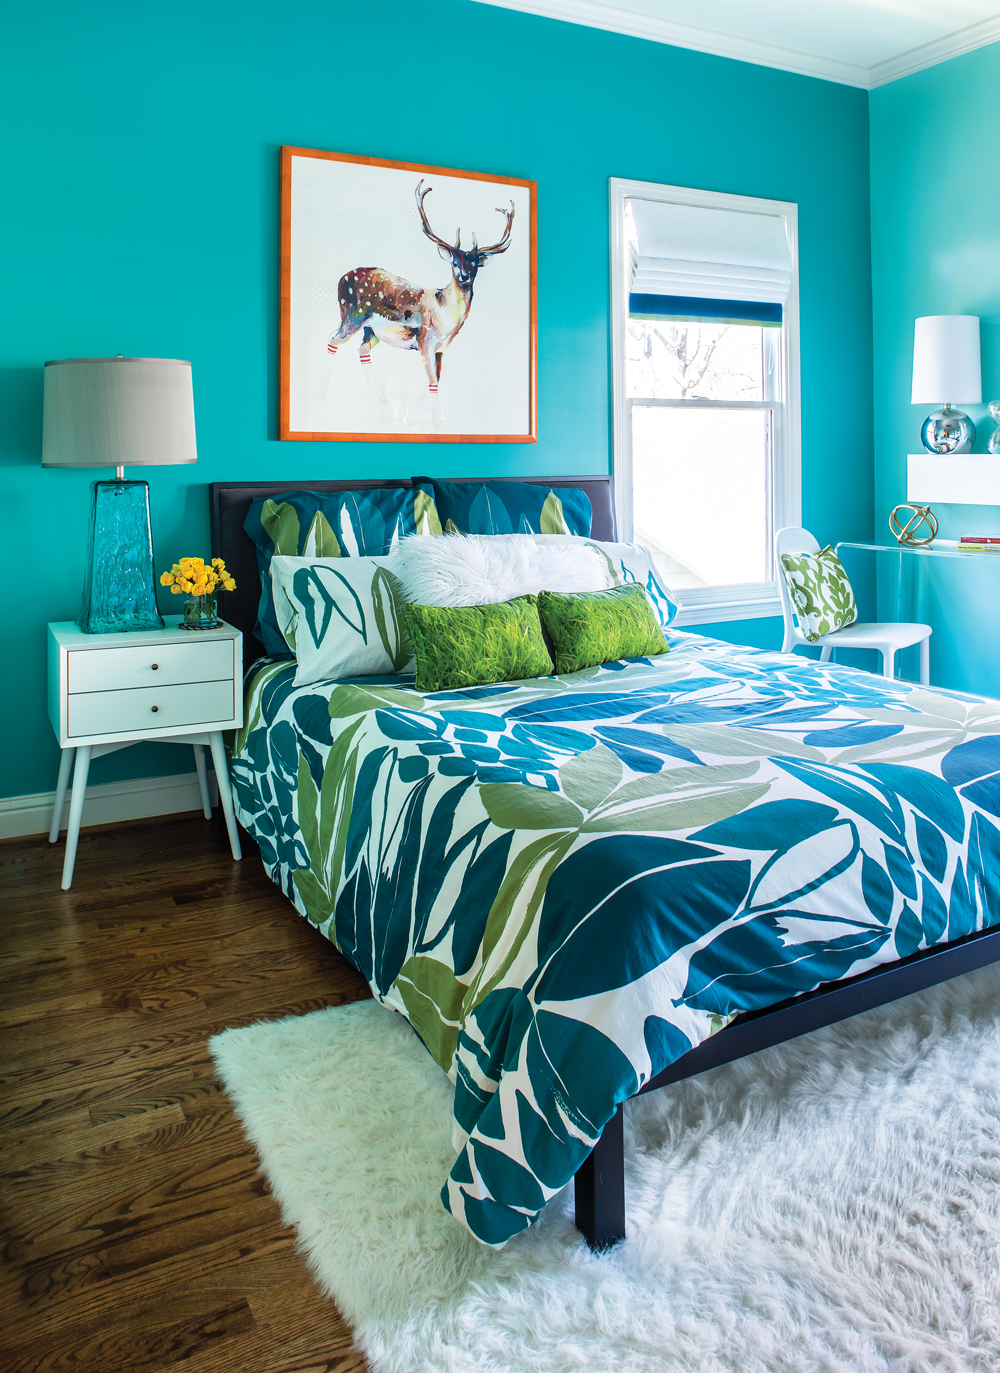 turquoise bedroom furniture. Photograph By Jeff Herr Turquoise Bedroom Furniture R